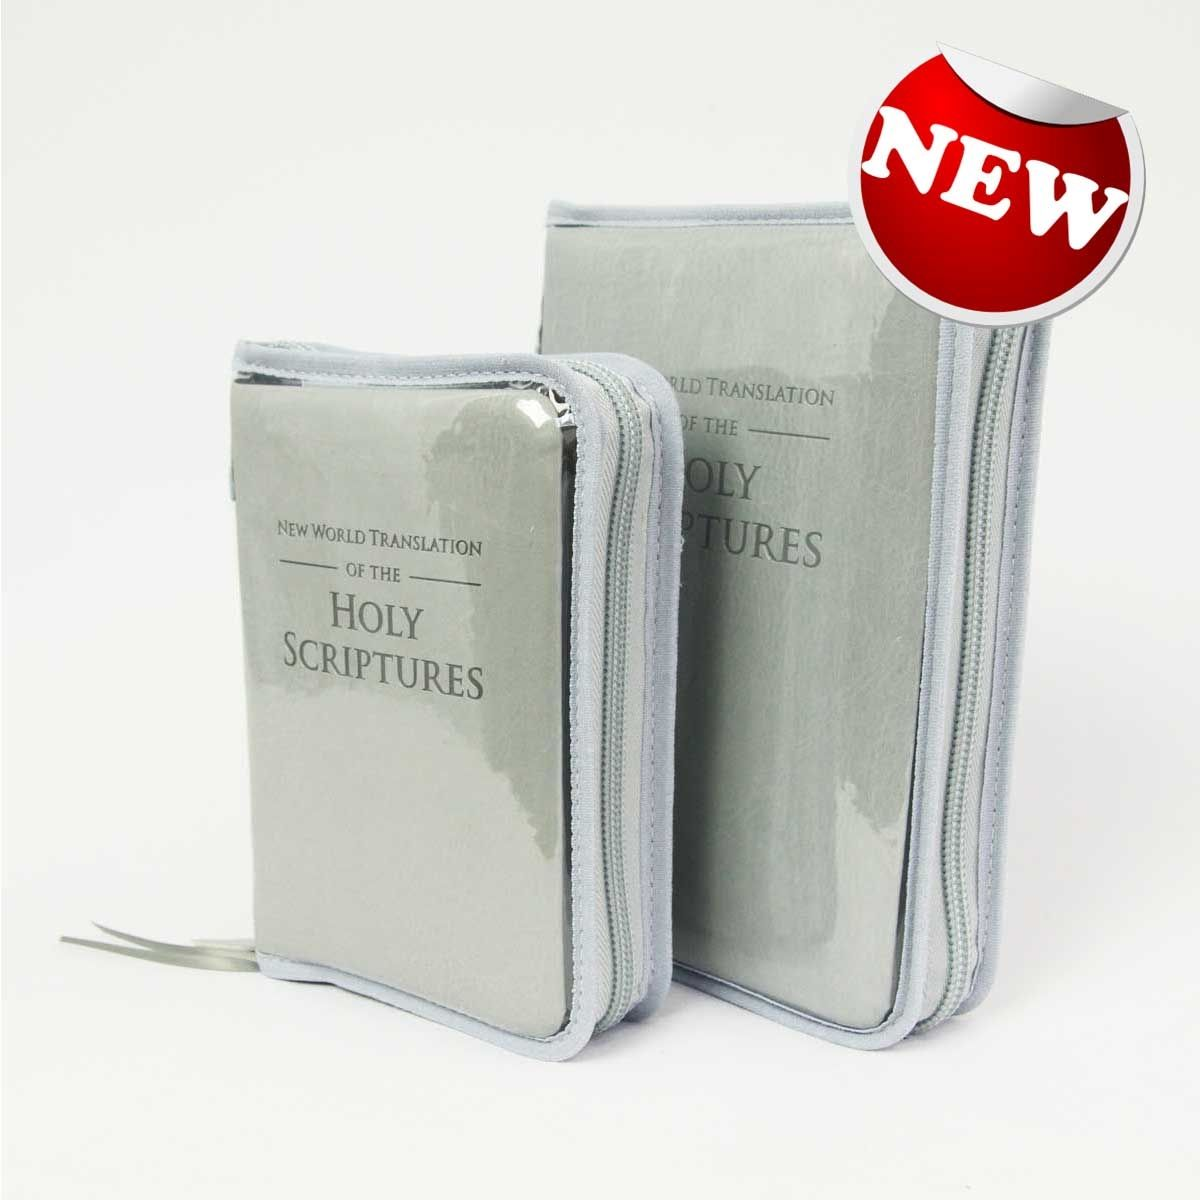 New World Translation Transparent Zipper Cover Vinyl Cover Pioneer Gifts Vinyl Cover Bible Covers